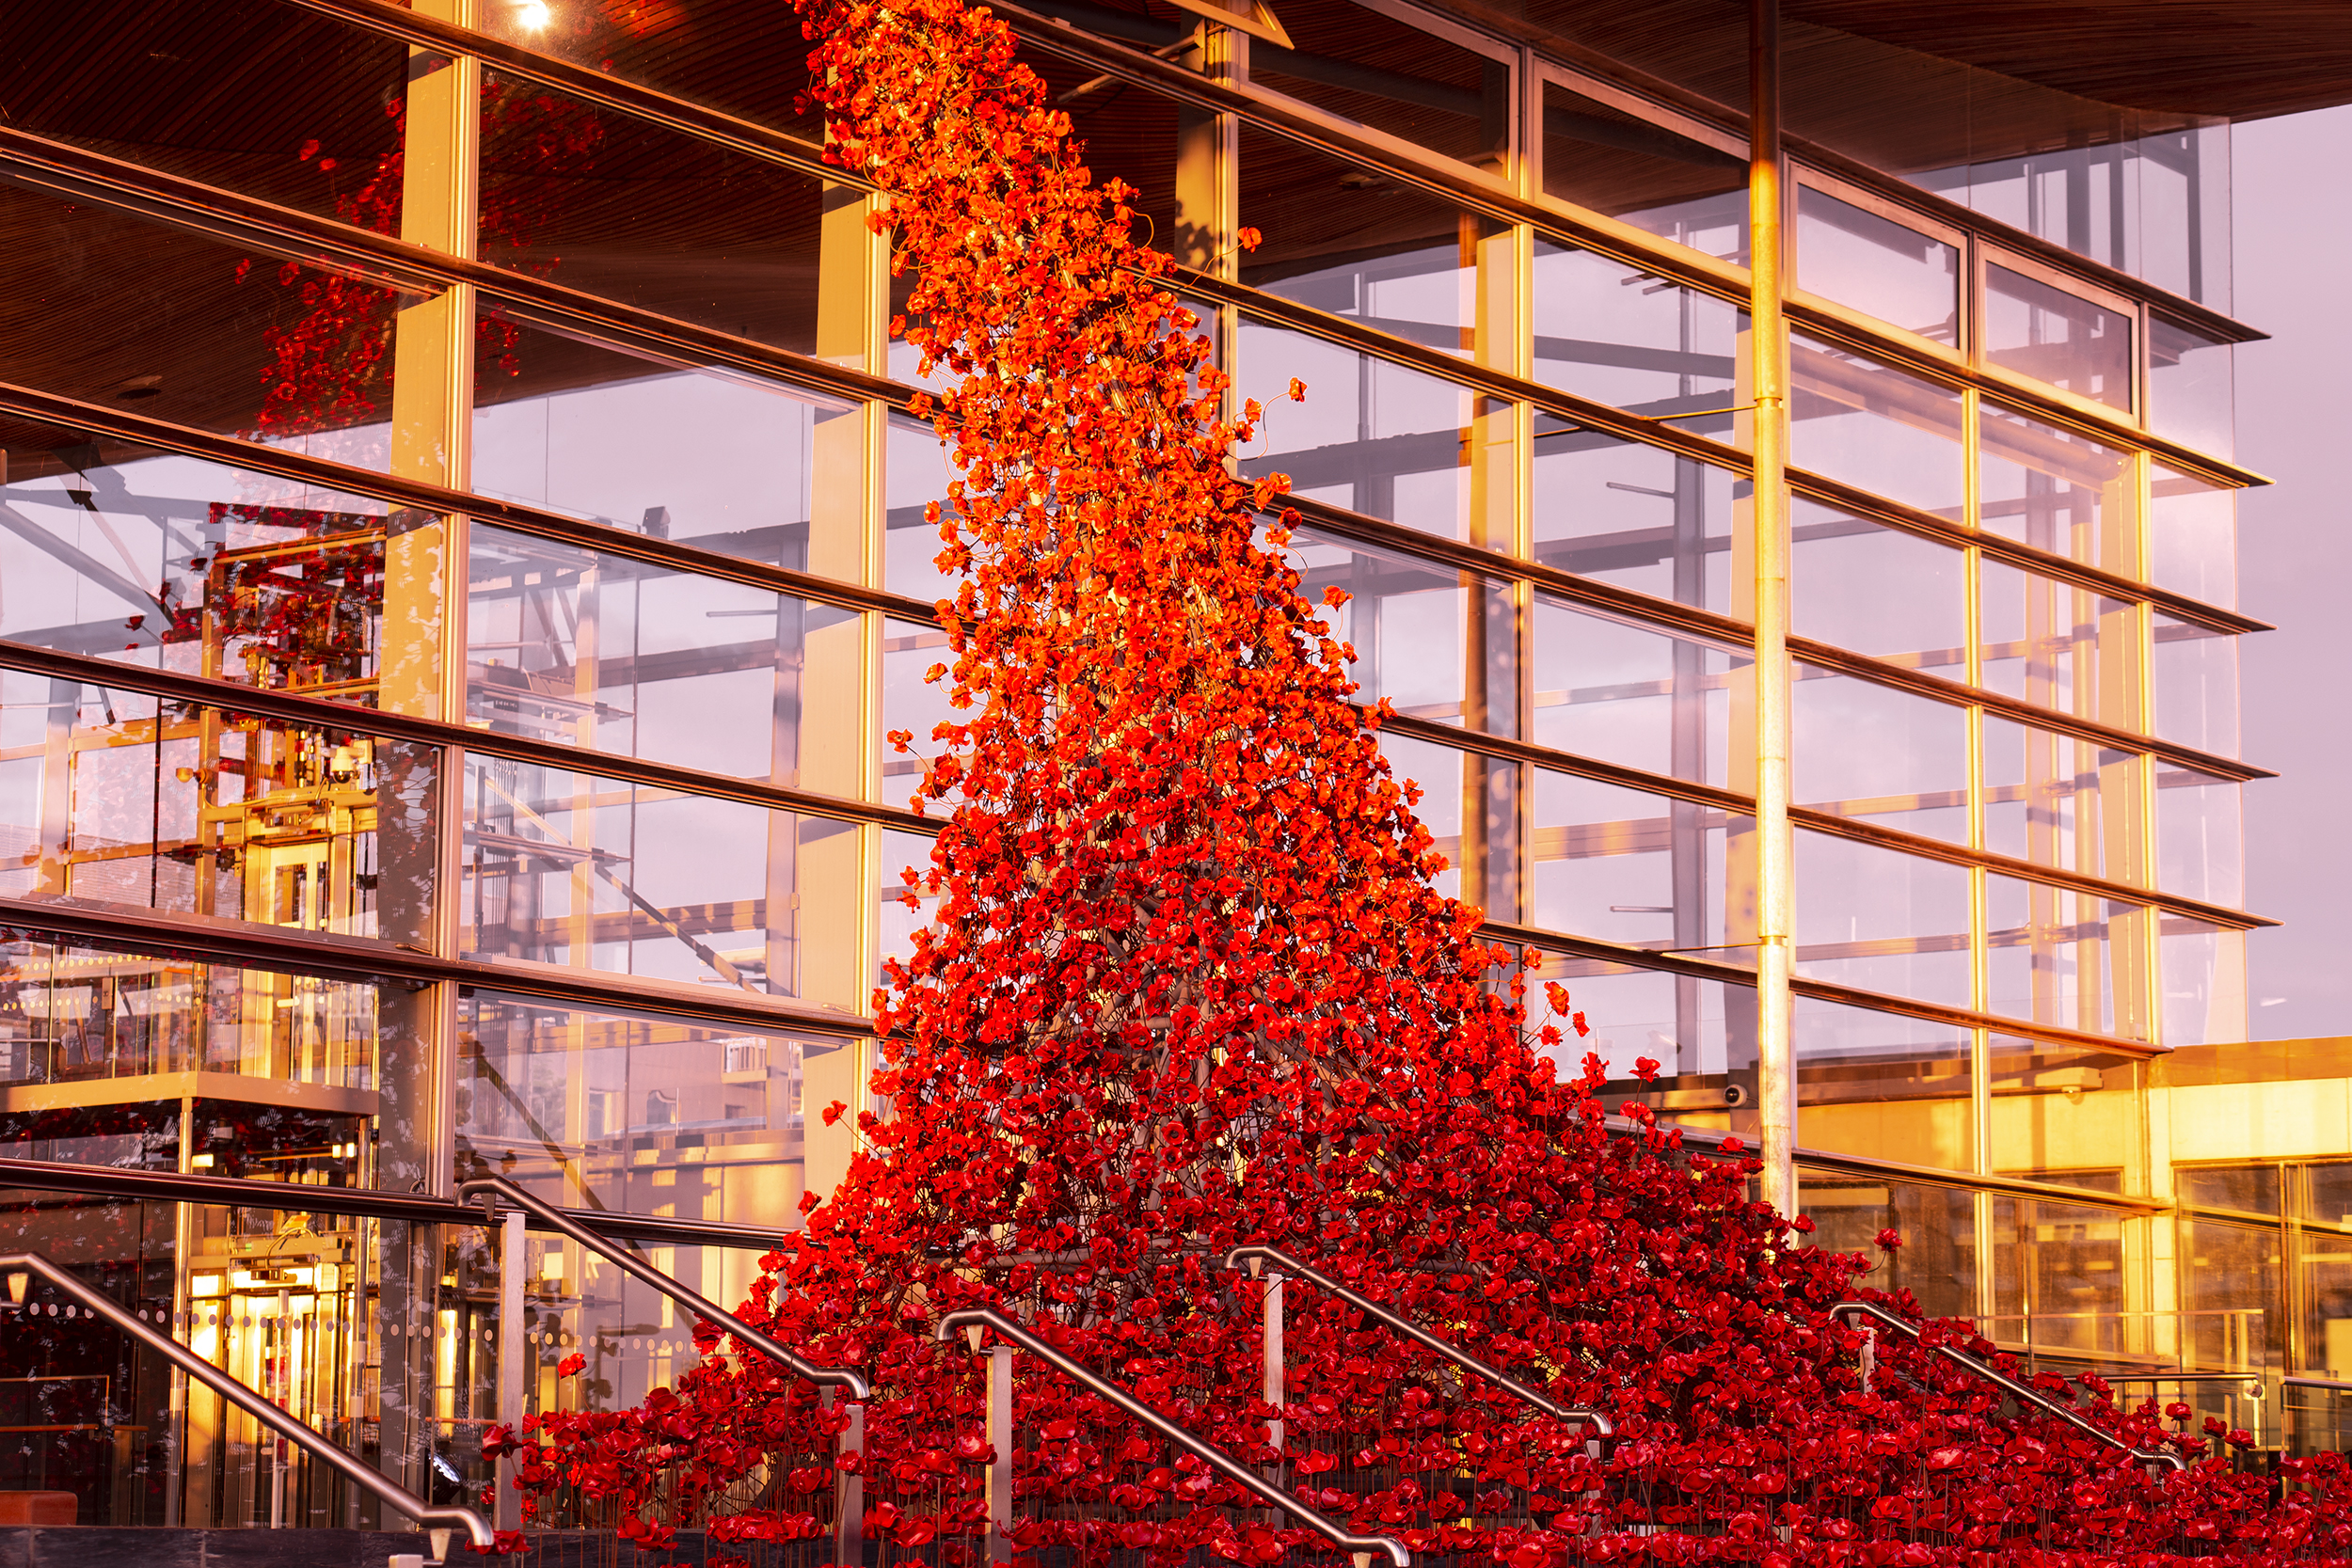 Weeping Window installation, Senedd, Cardiff